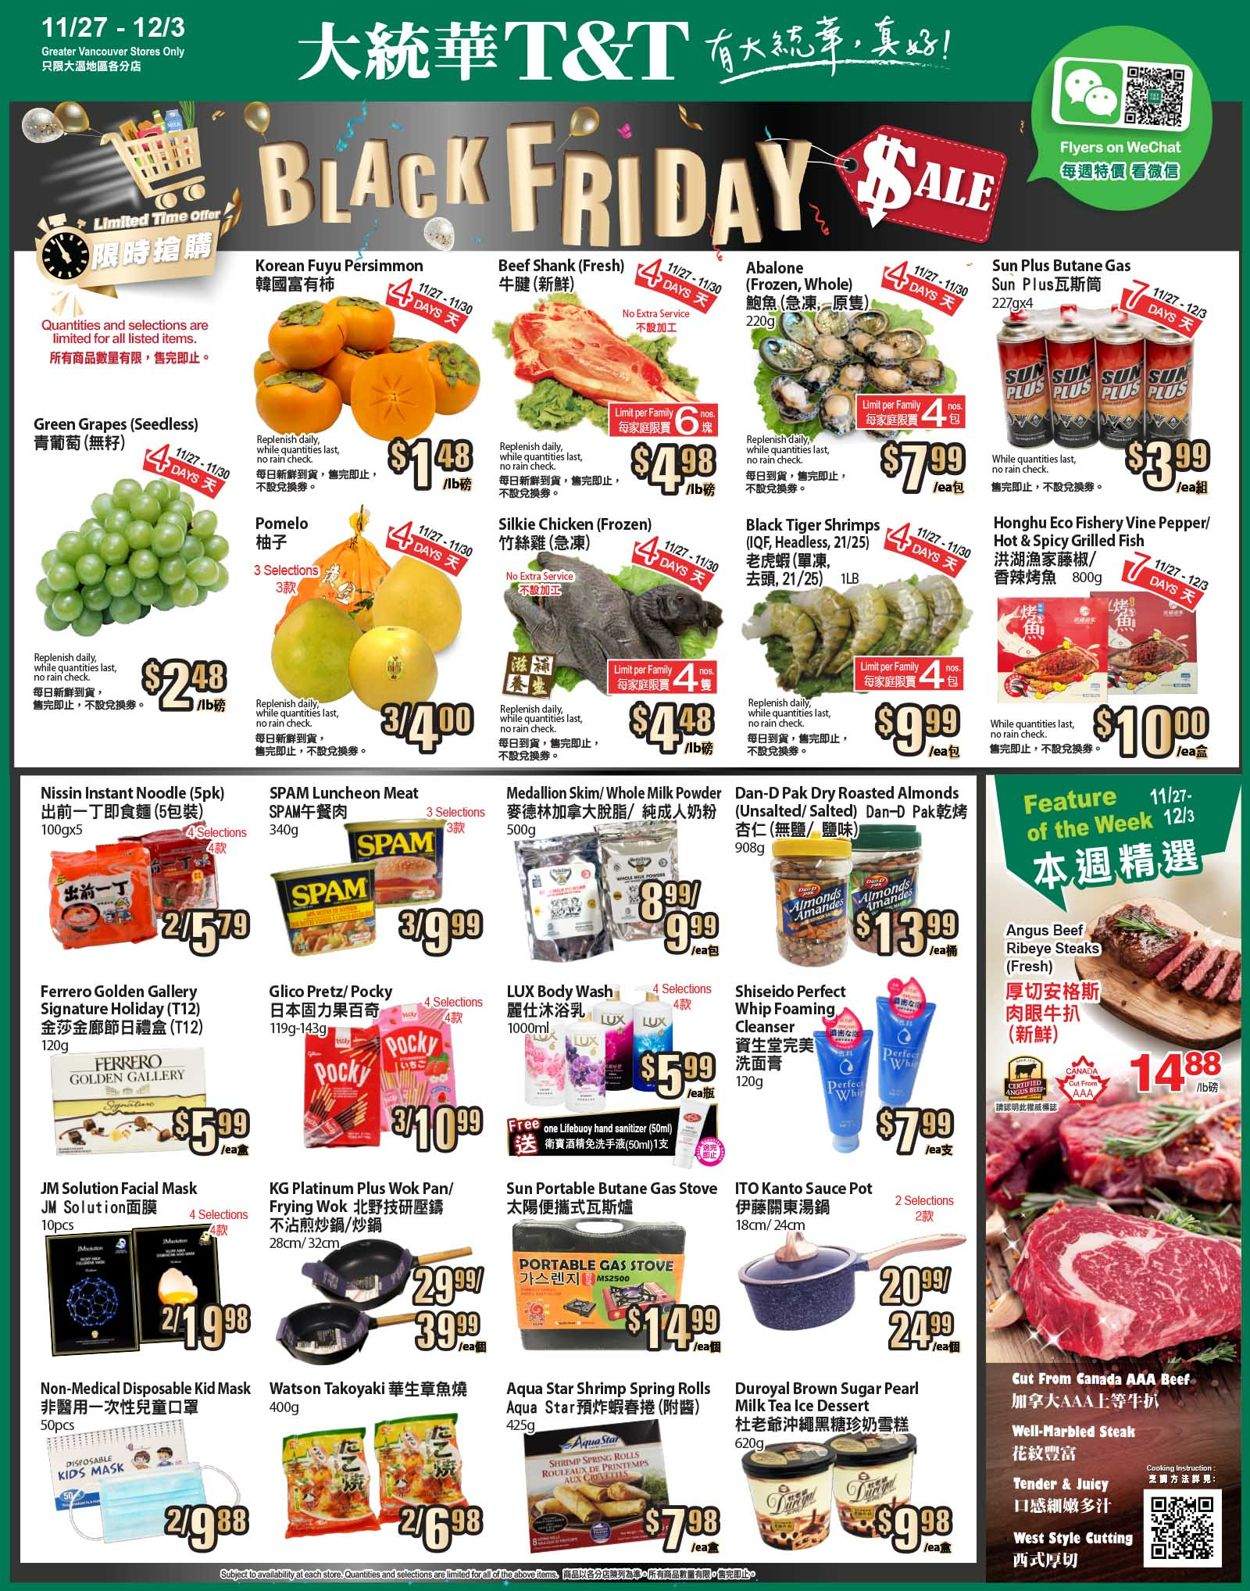 T&T Supermarket Black Friday 2020 - British Columbia Flyer - 11/27-12/03/2020